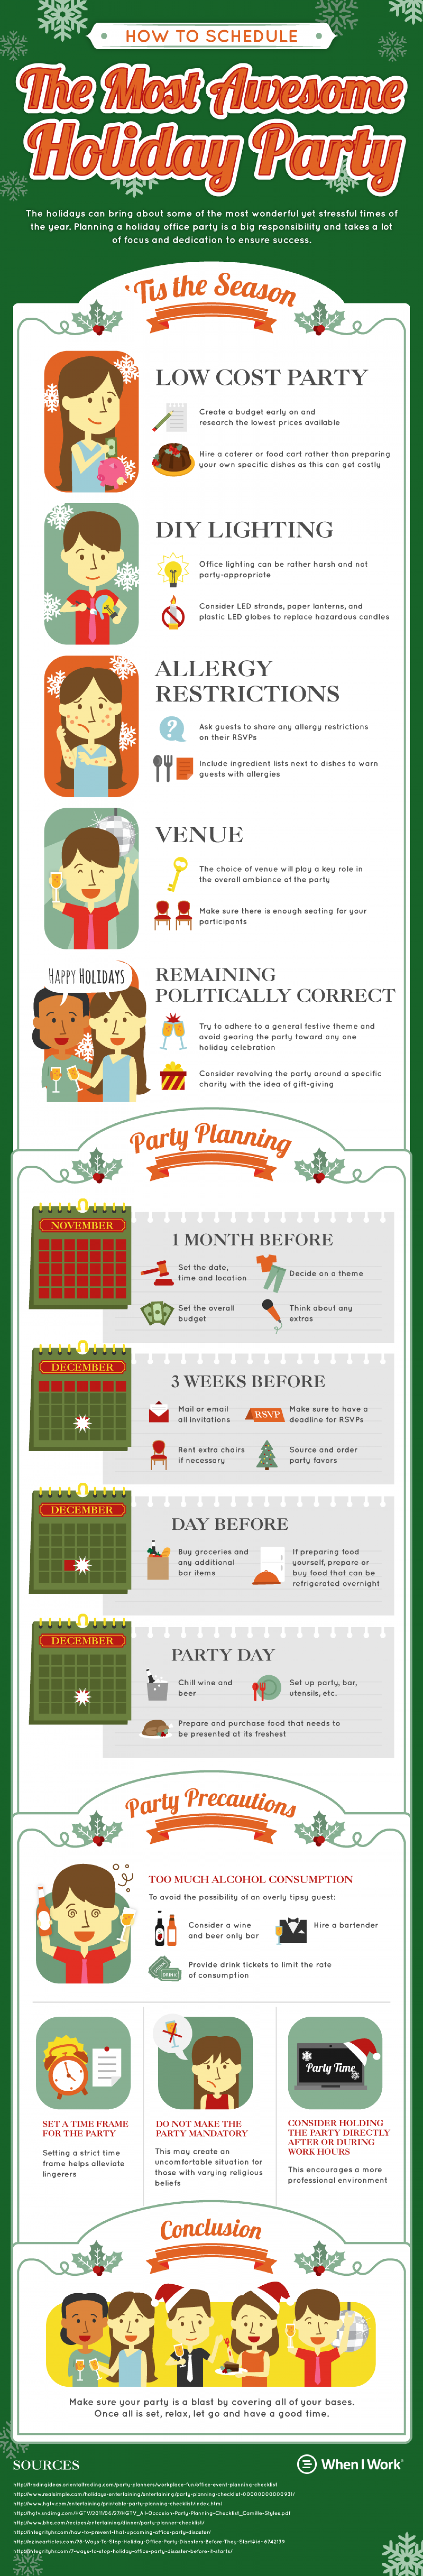 How To Schedule The Most Awesome Holiday Party Infographic